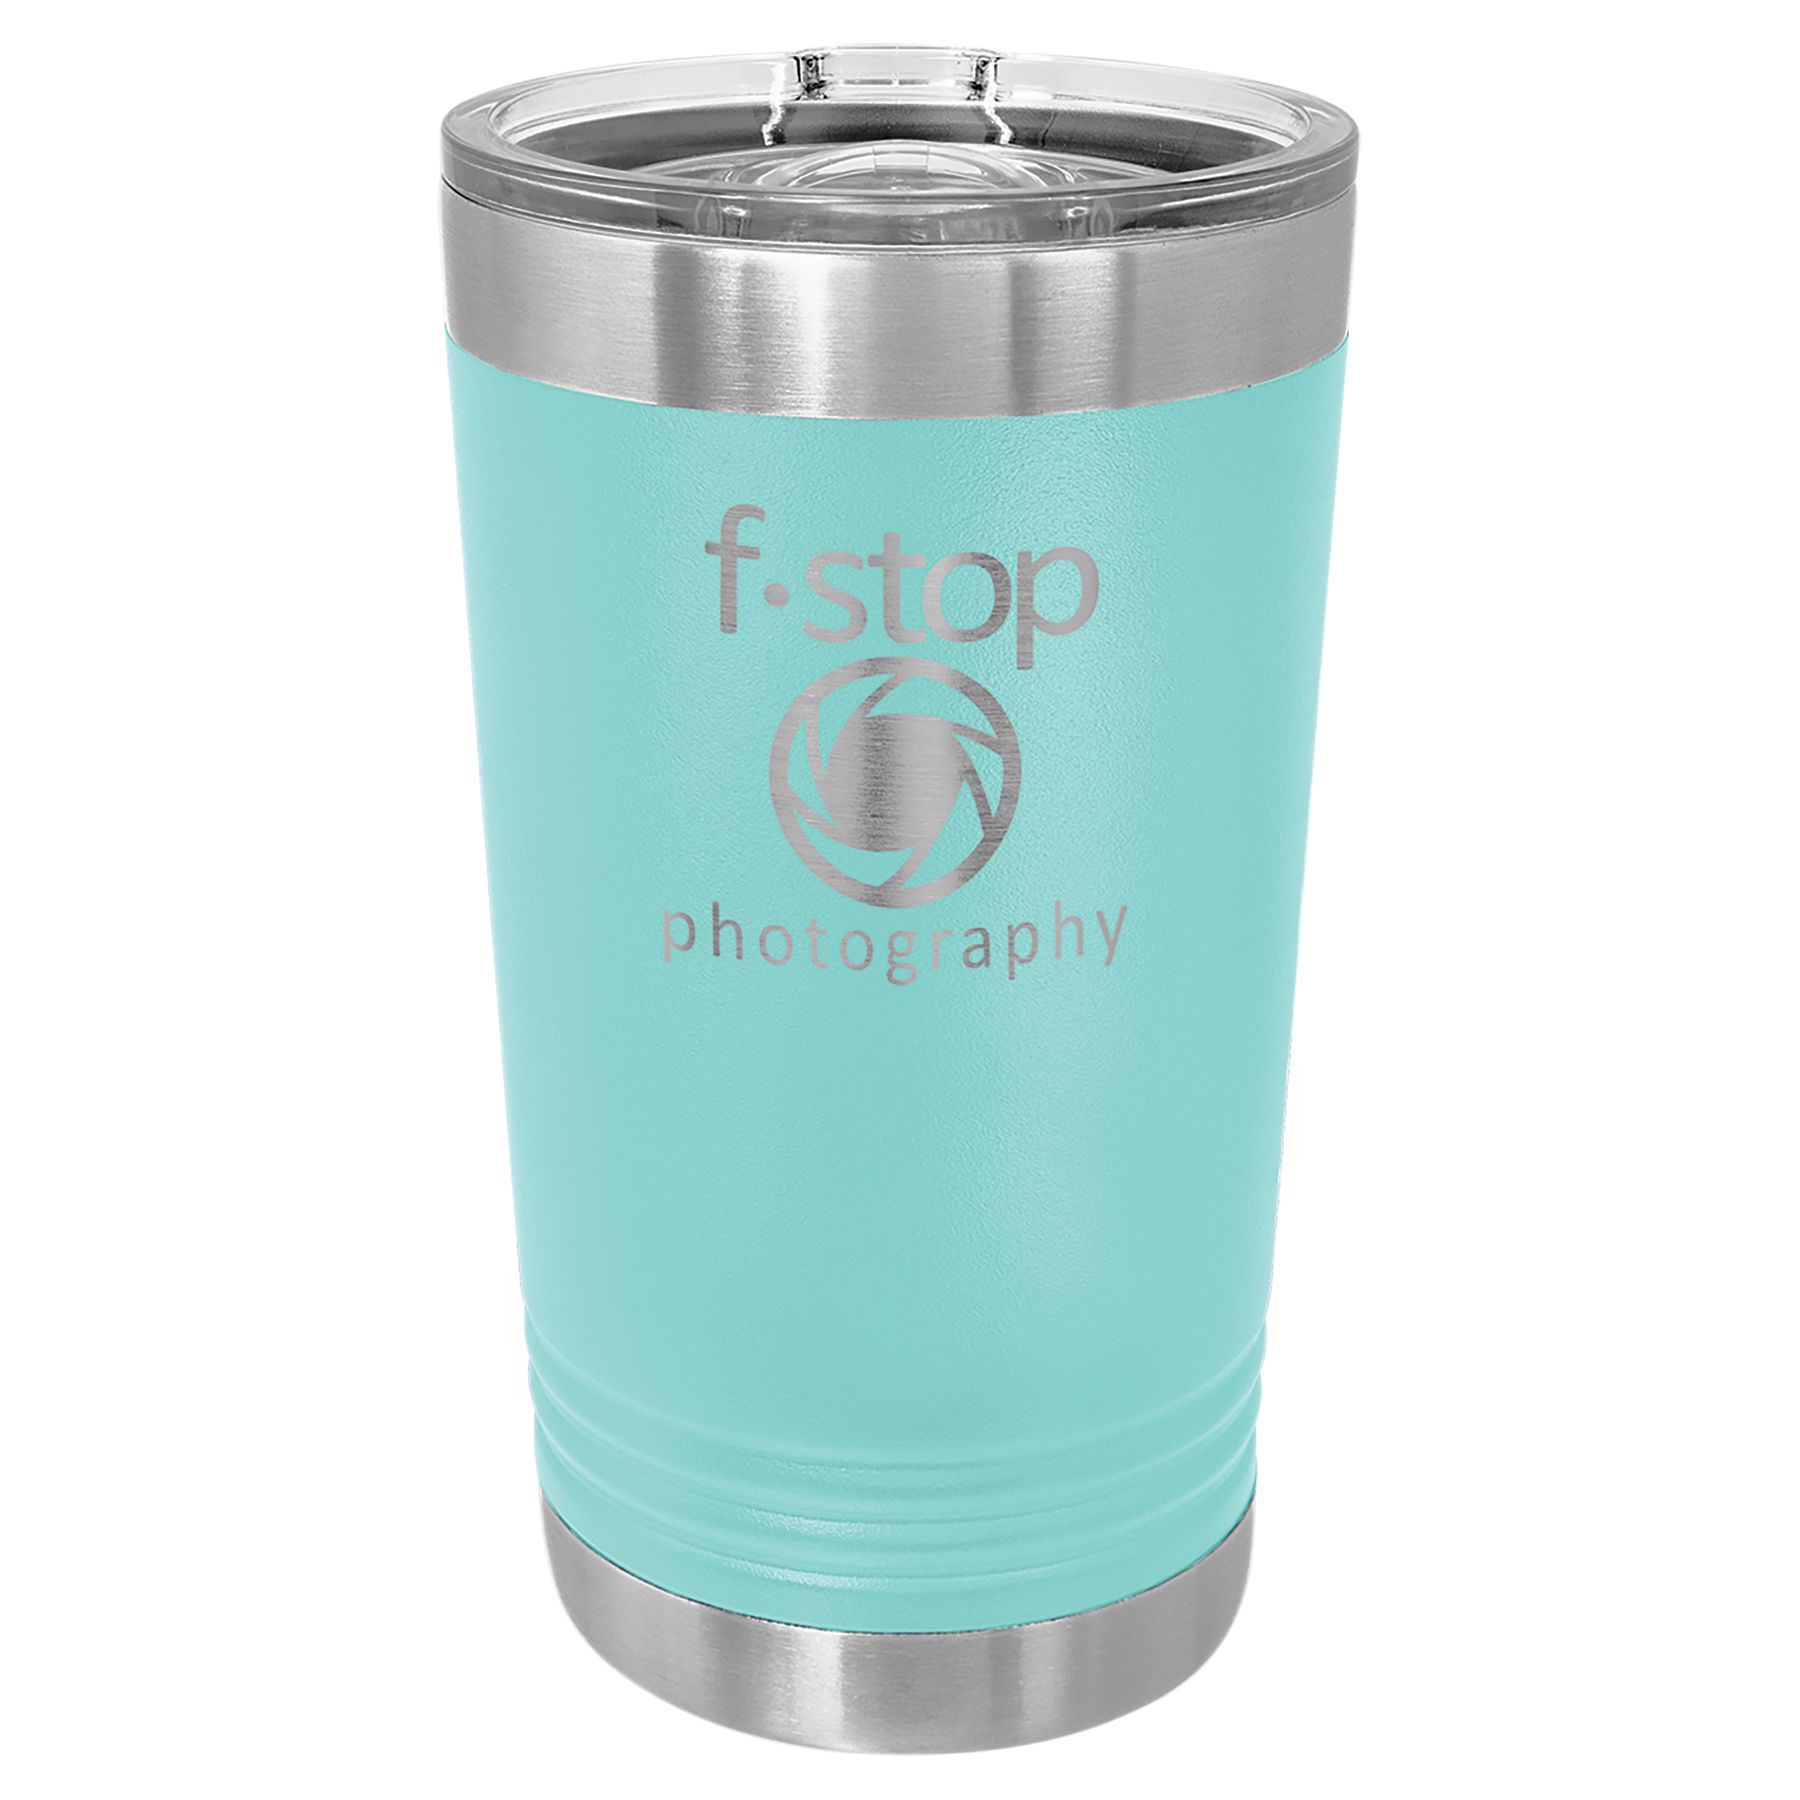 16 oz. Teal Stainless Steel Polar Camel Pint with Slider Lid.  Customizable with your personal image or saying.